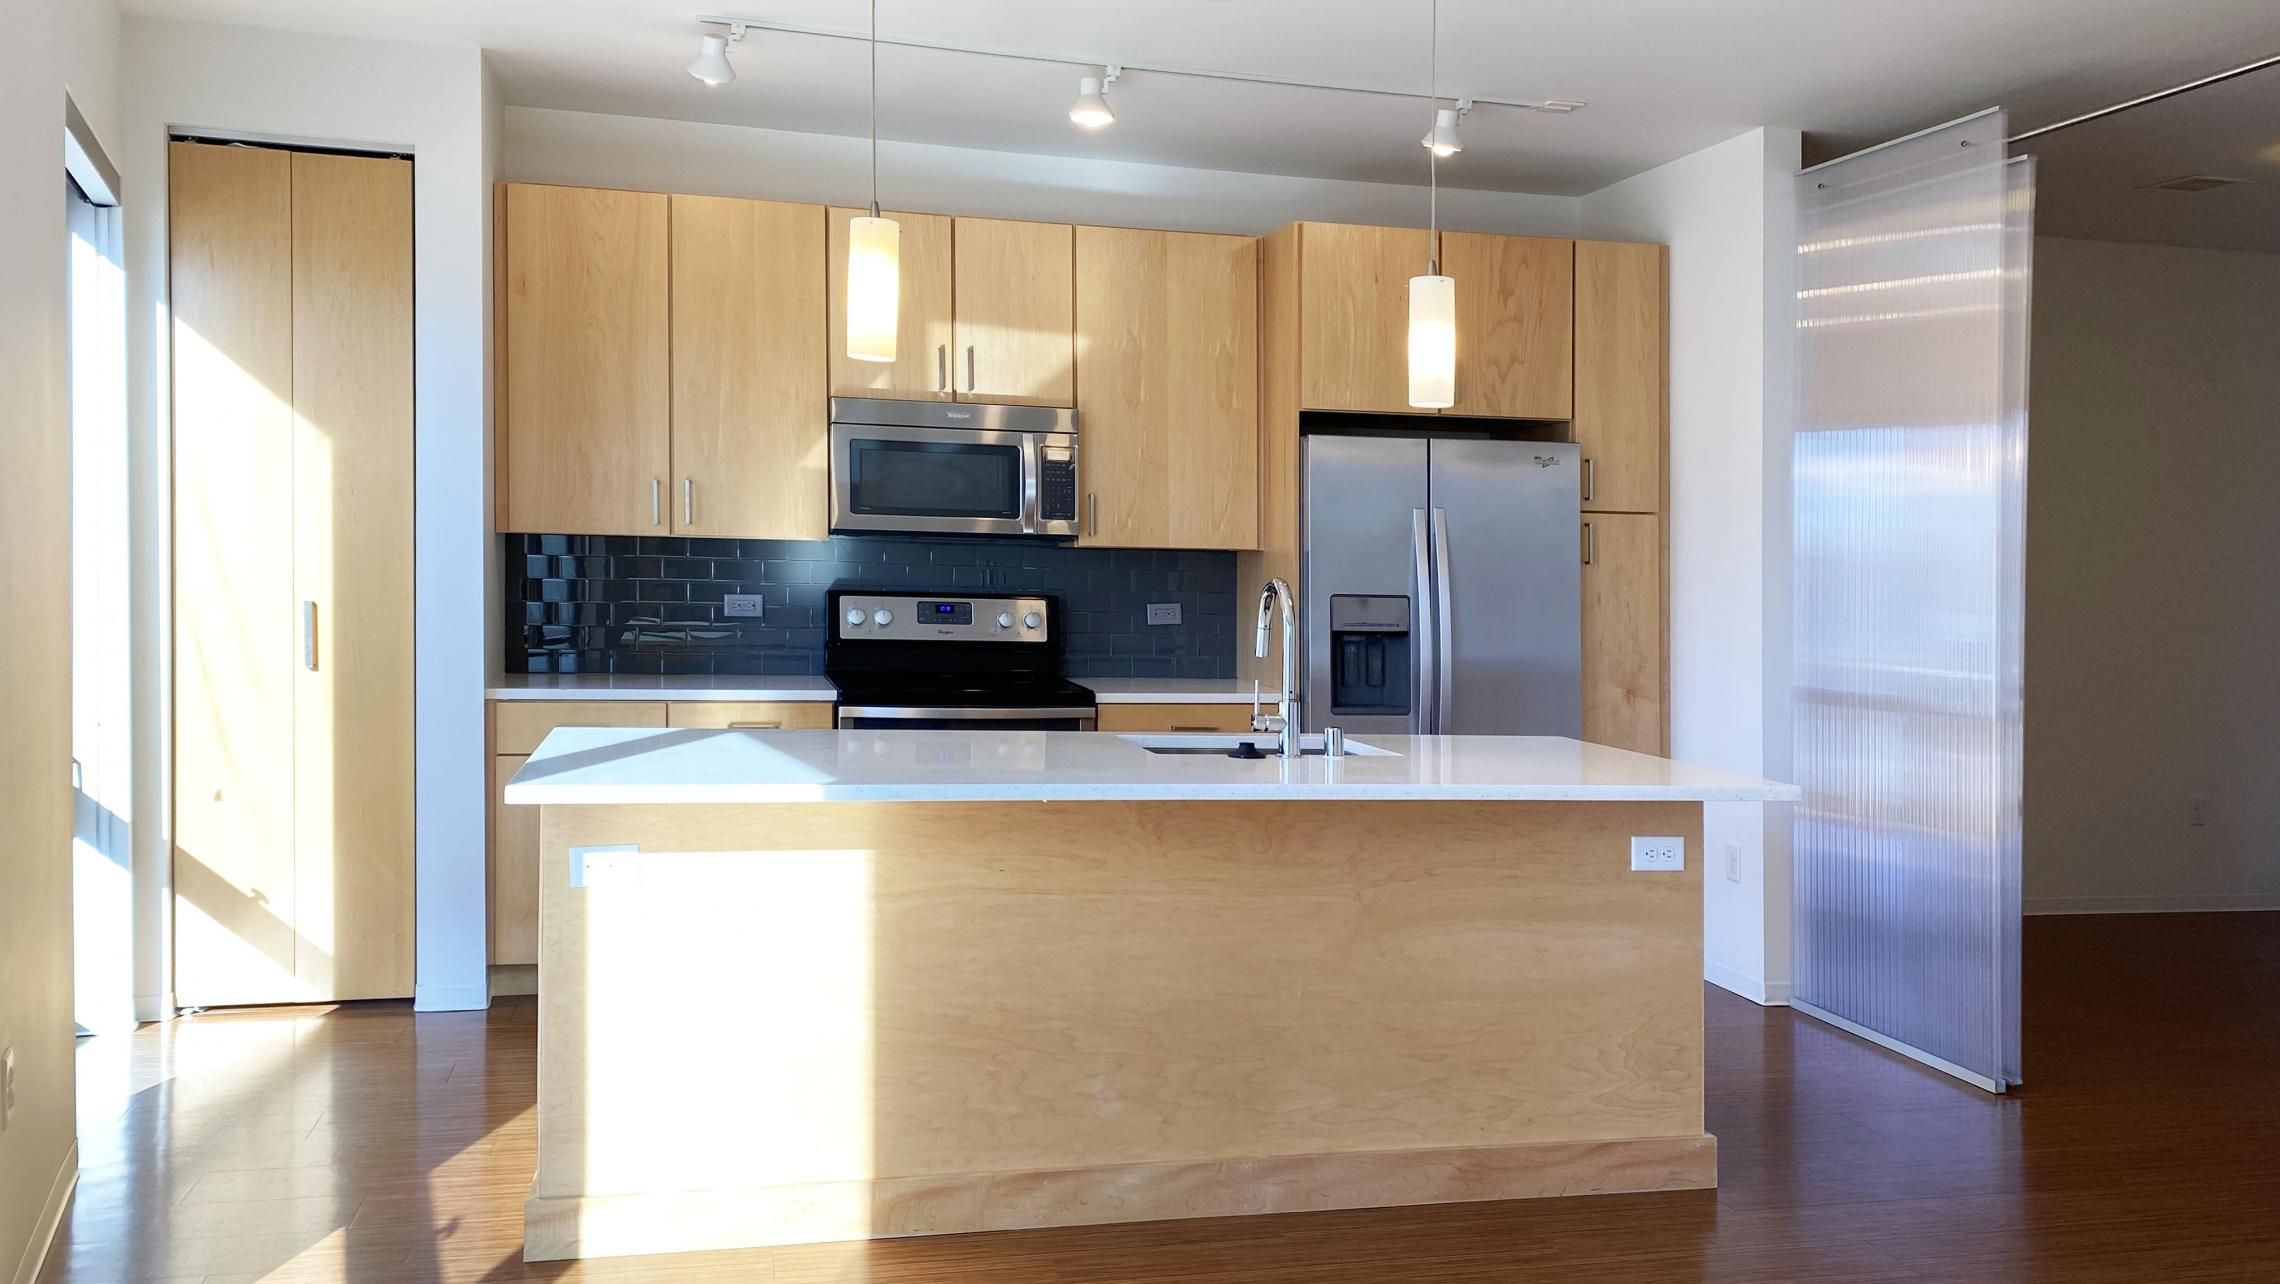 SEVEN27-at-The-Yards-Apartment-204-One-Bedroom-Modern-Upscale-Luxury-Design-Radiant-Heating-Fitness-Lounge-Fireplace-Courtyard-Downtown-Madison-Cats-Dogs-Lifestyle-Natural-Light-Lake-View